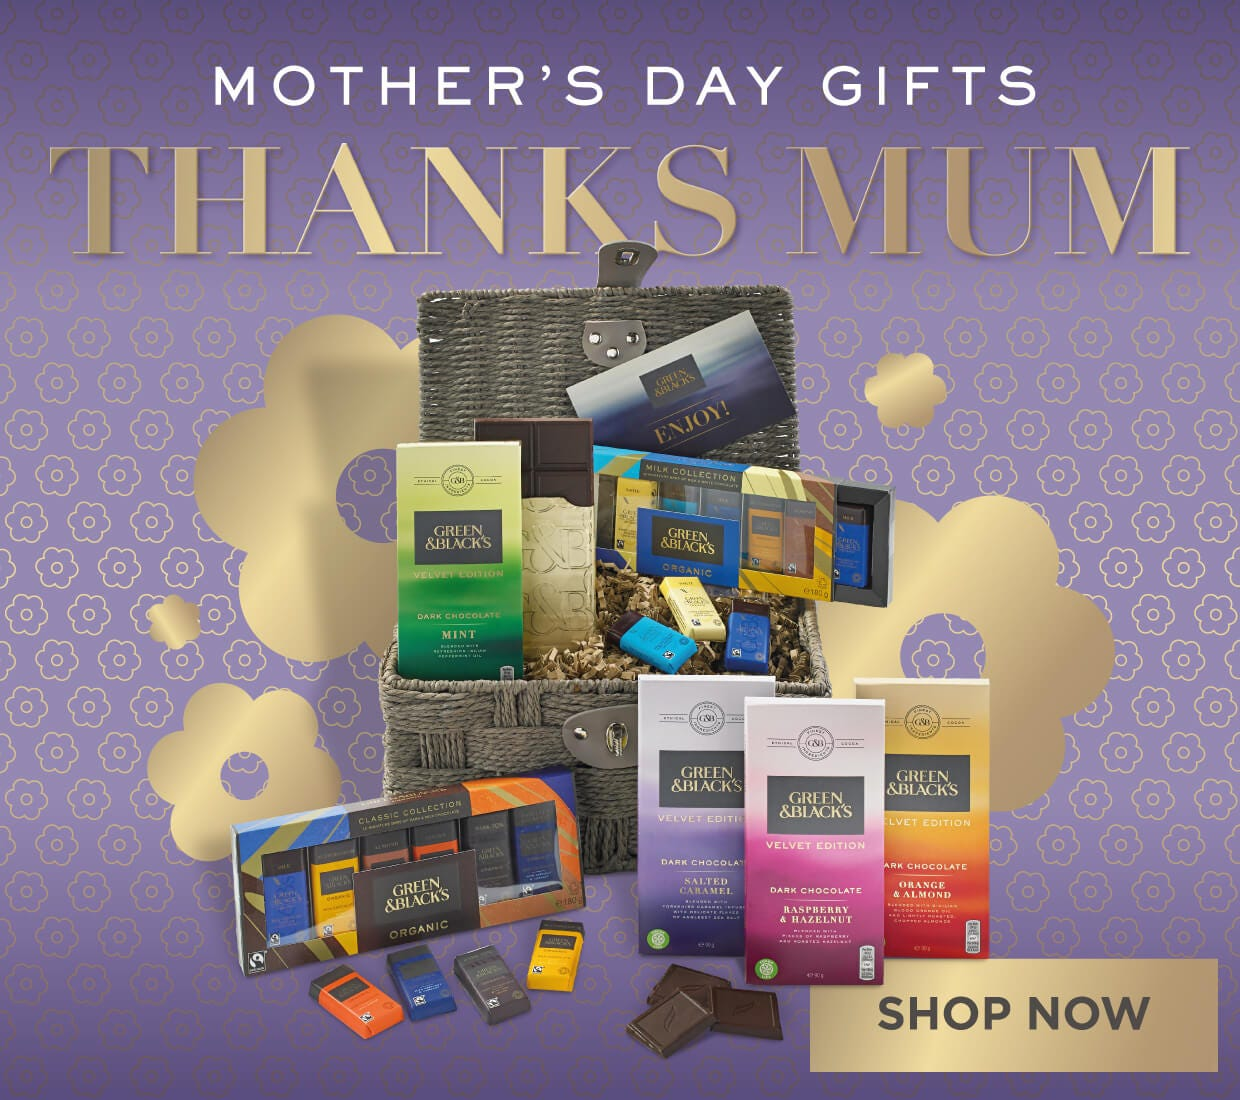 Indulgent Mothers Day Gifts from Green & Black's